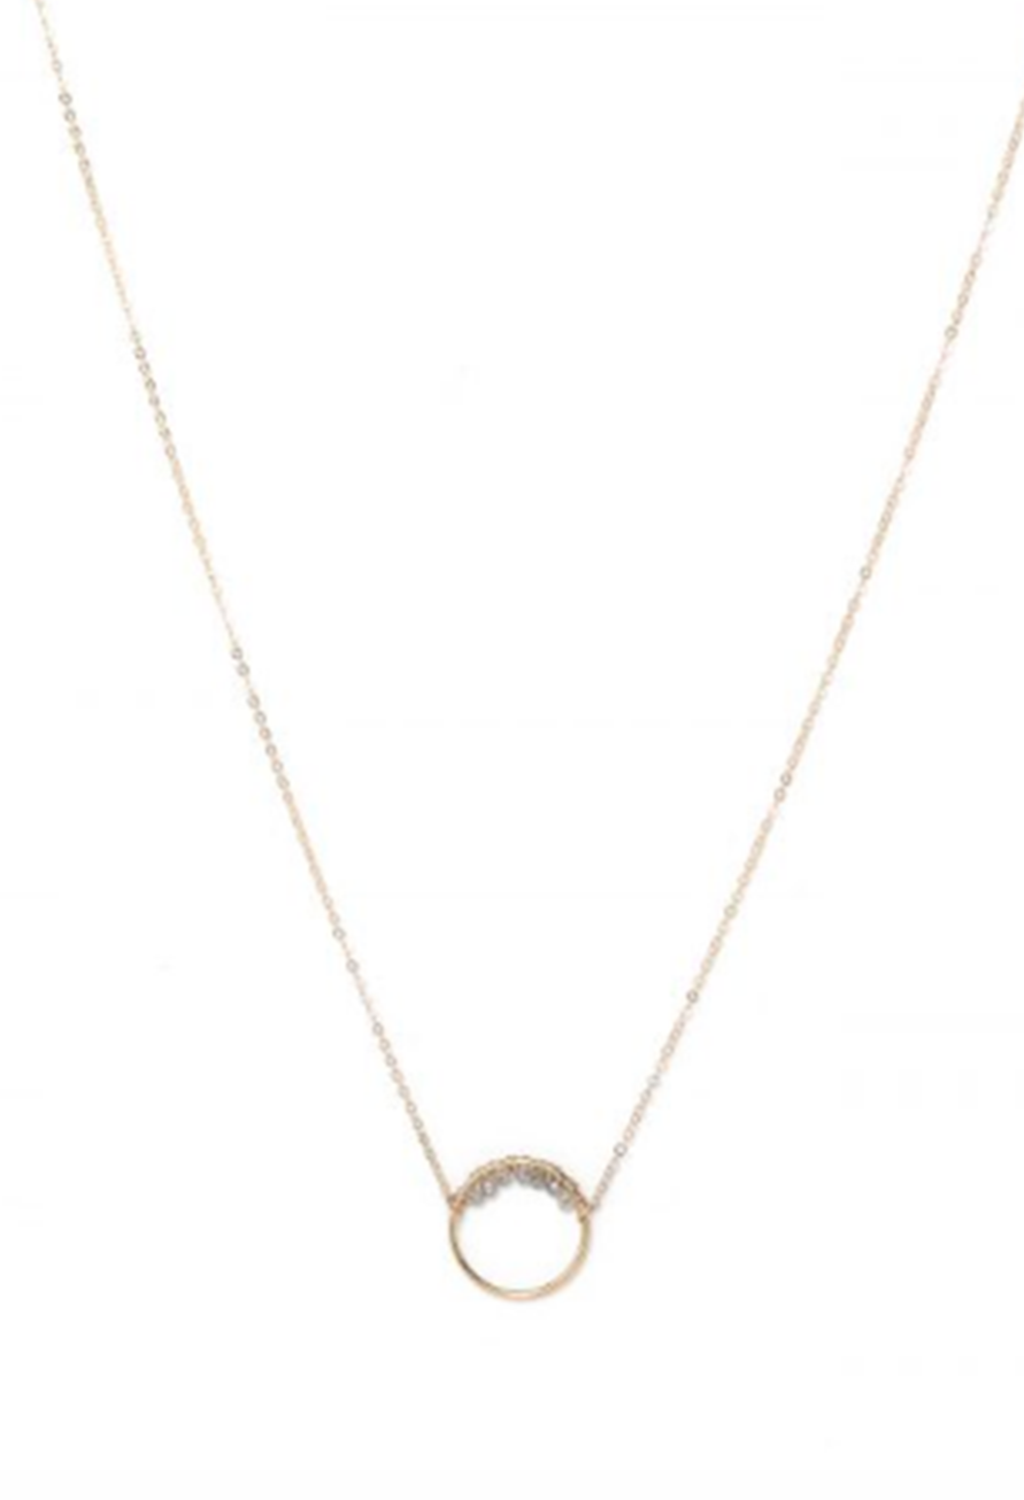 Clear Celine Labra Necklace